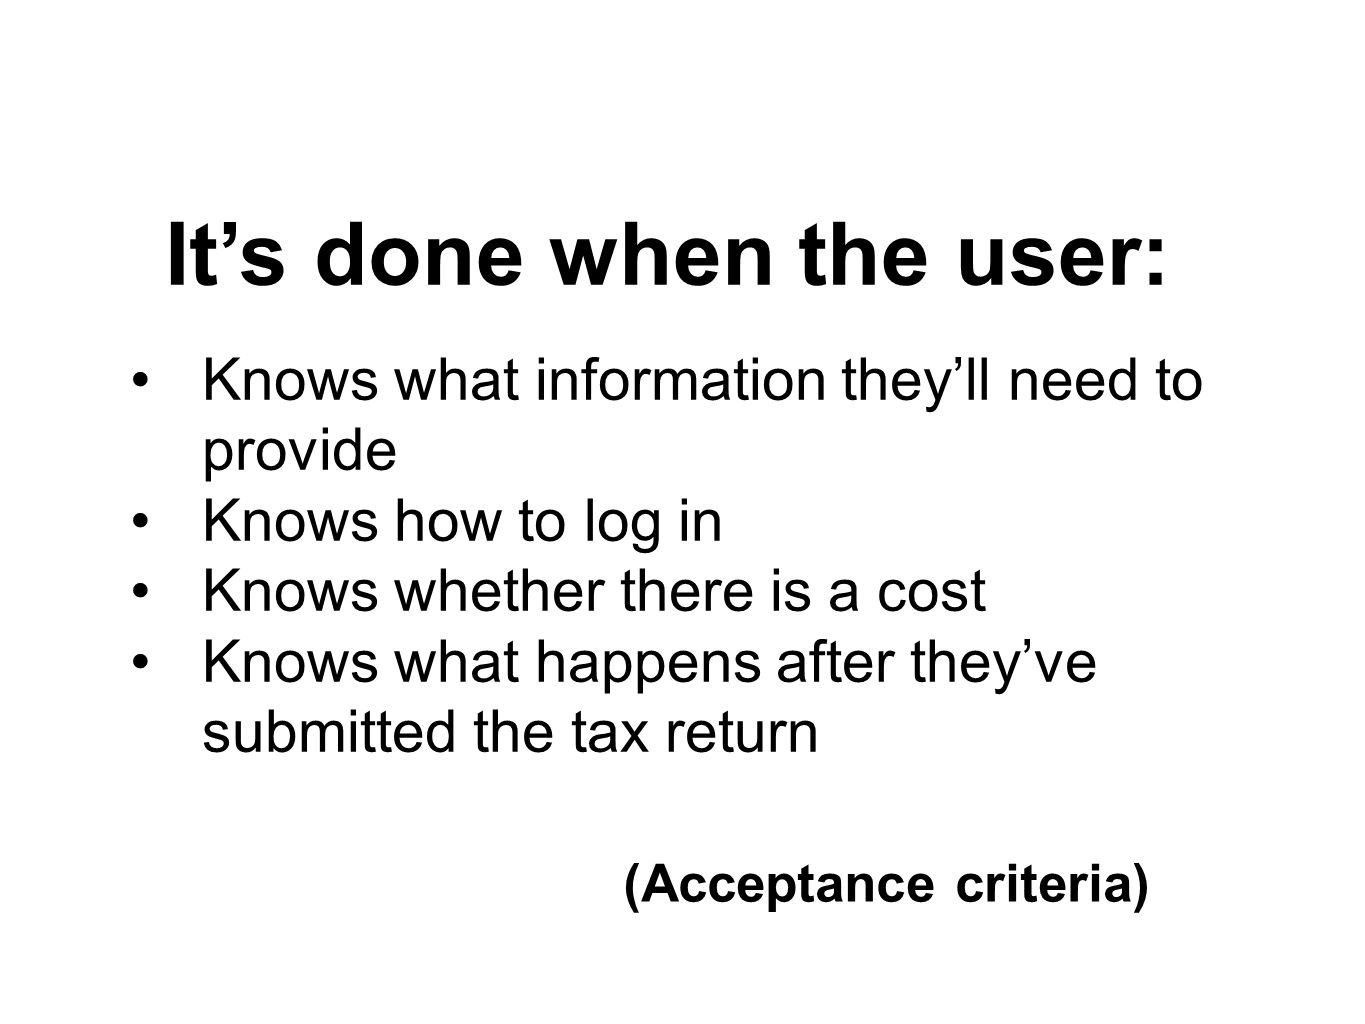 It's done when the user: Knows what information they'll need to provide Knows how to log in Knows whether there is a cost Knows what happens after they've submitted the tax return (Acceptance criteria)